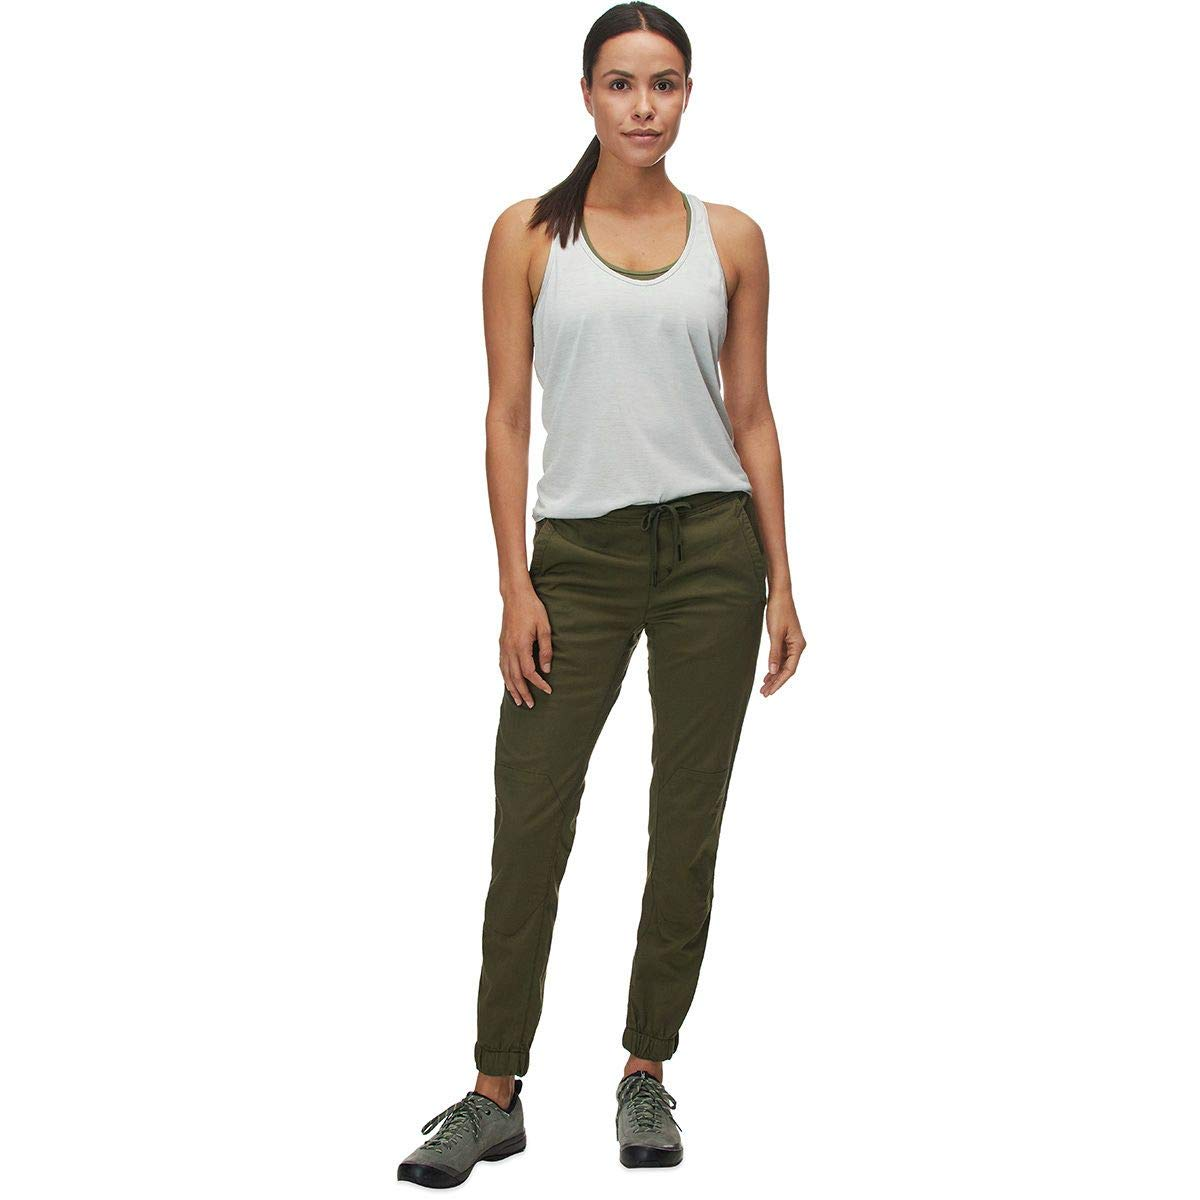 Sergeant Black Diamond Notion Pant  Women's